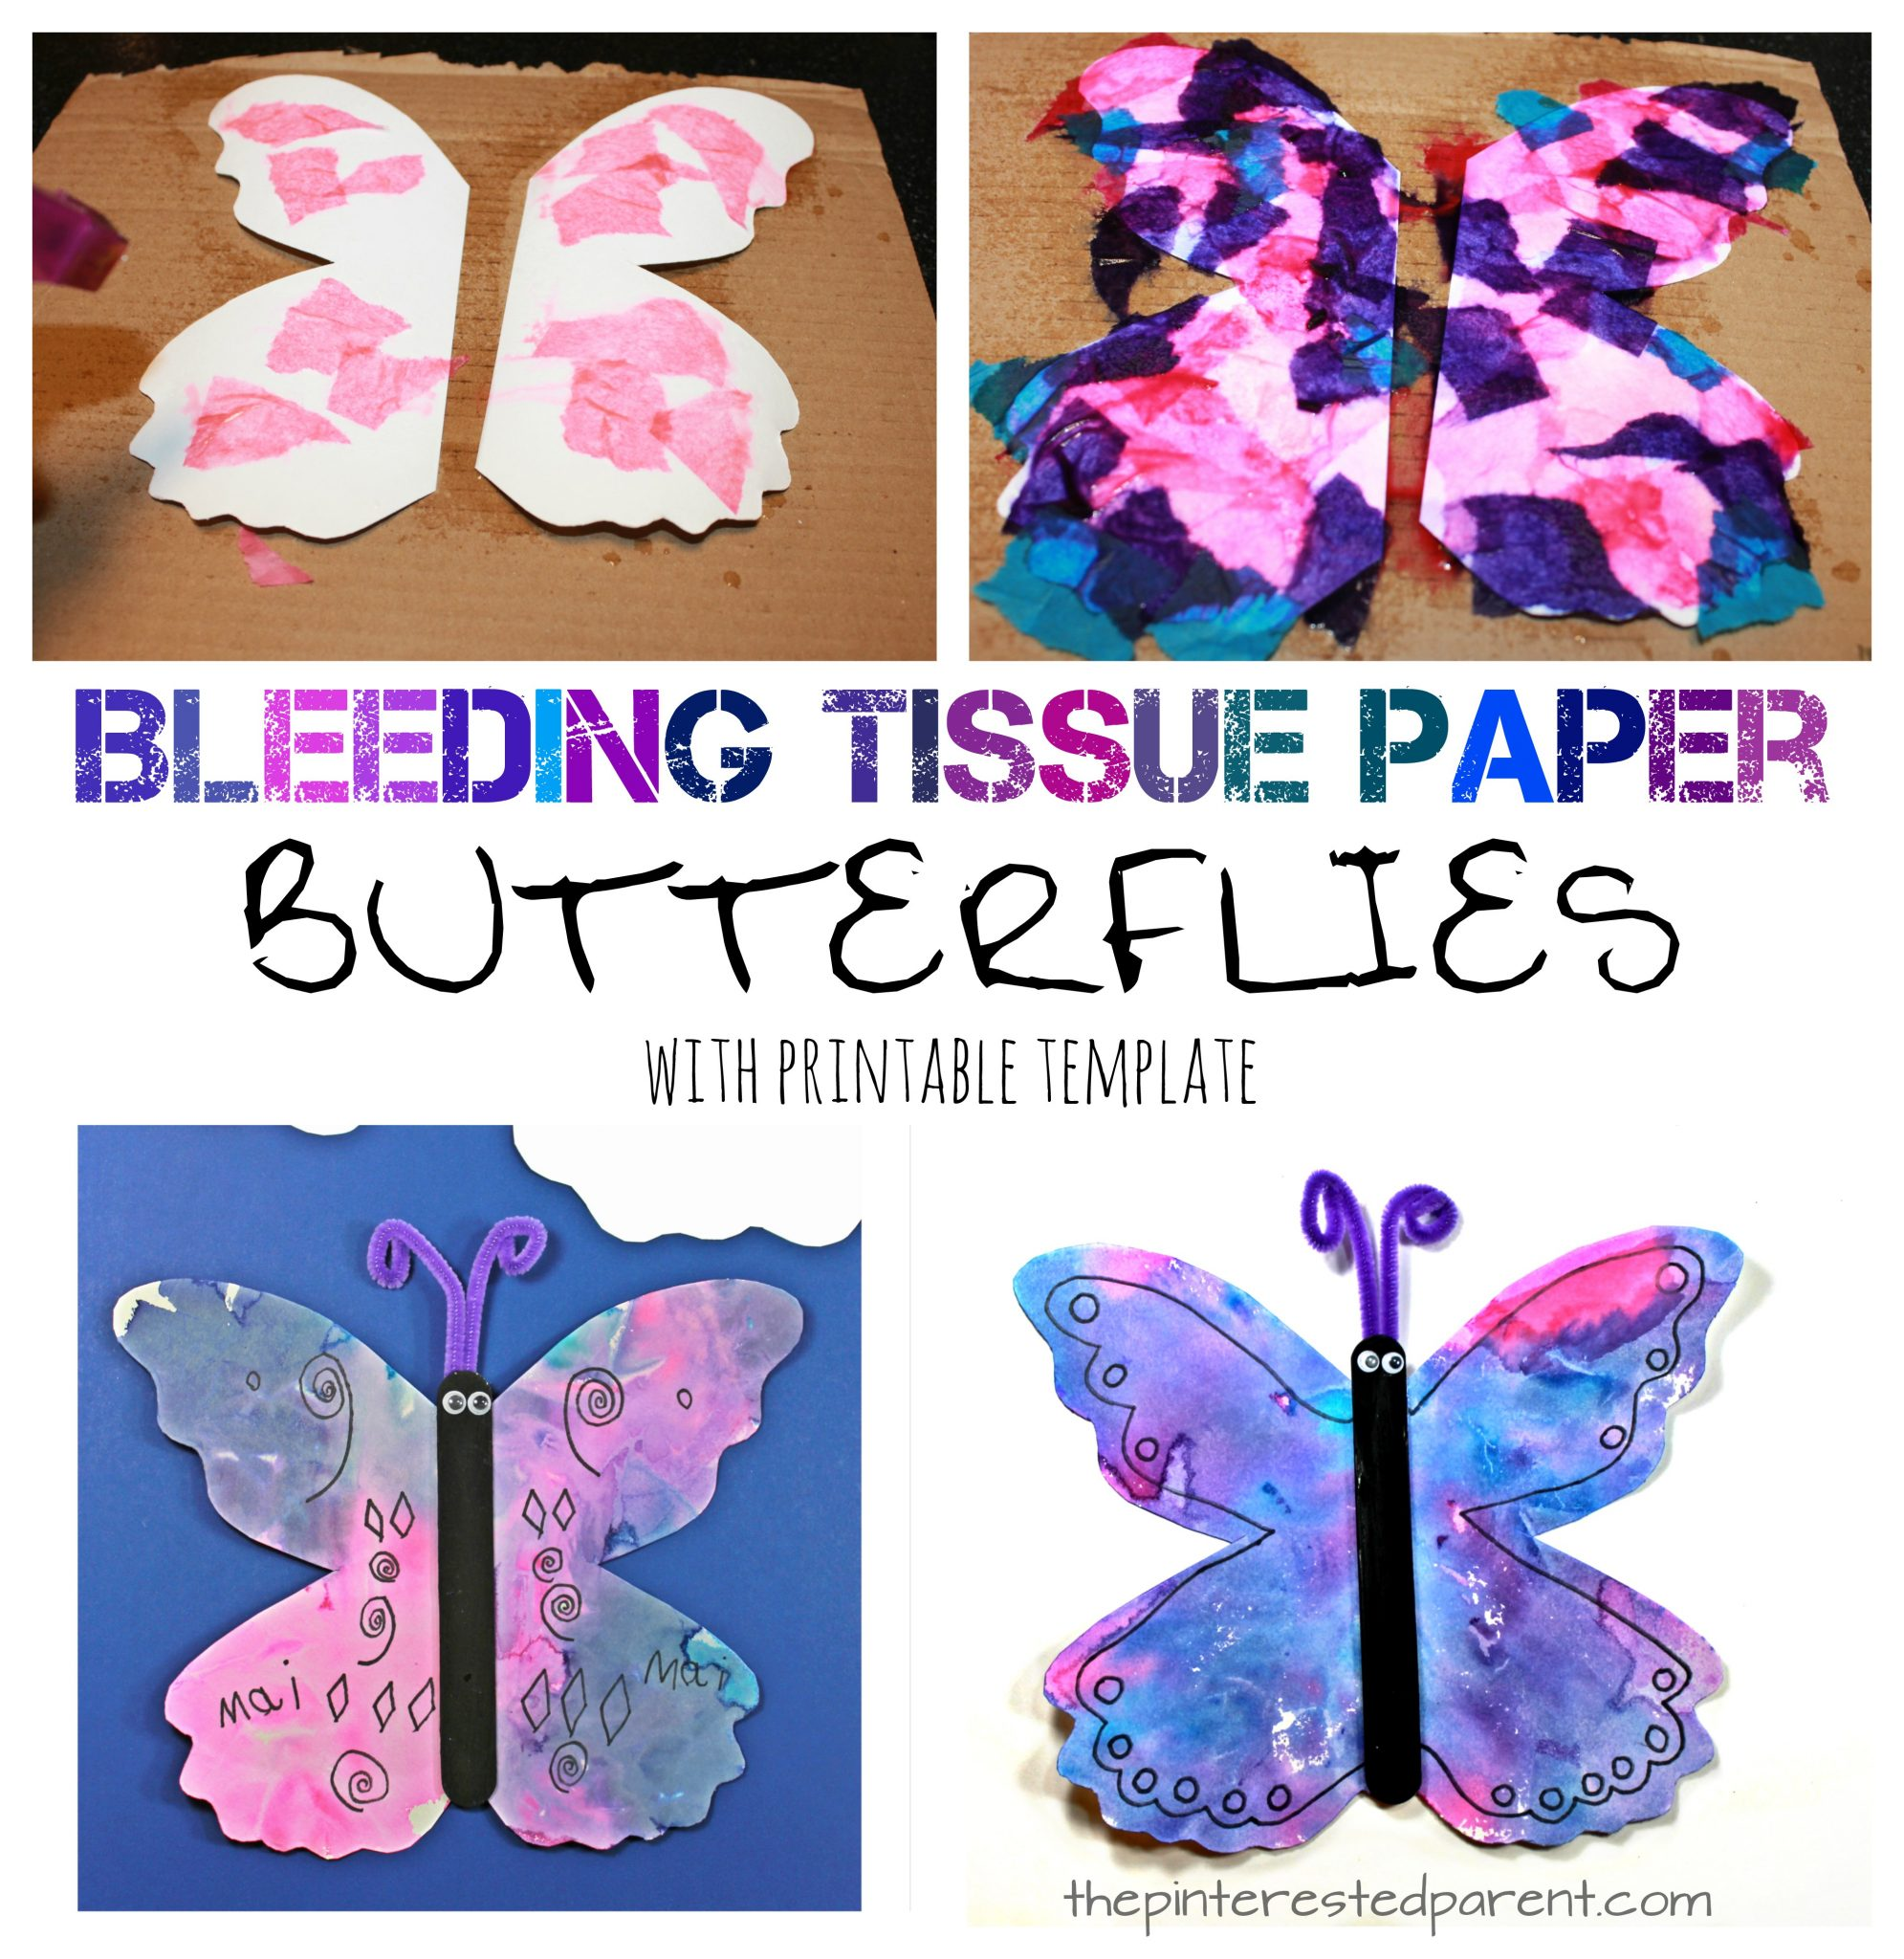 picture regarding Printable Tissue Paper named Bleeding Tissue Paper Butterflies The Pinterested Mum or dad